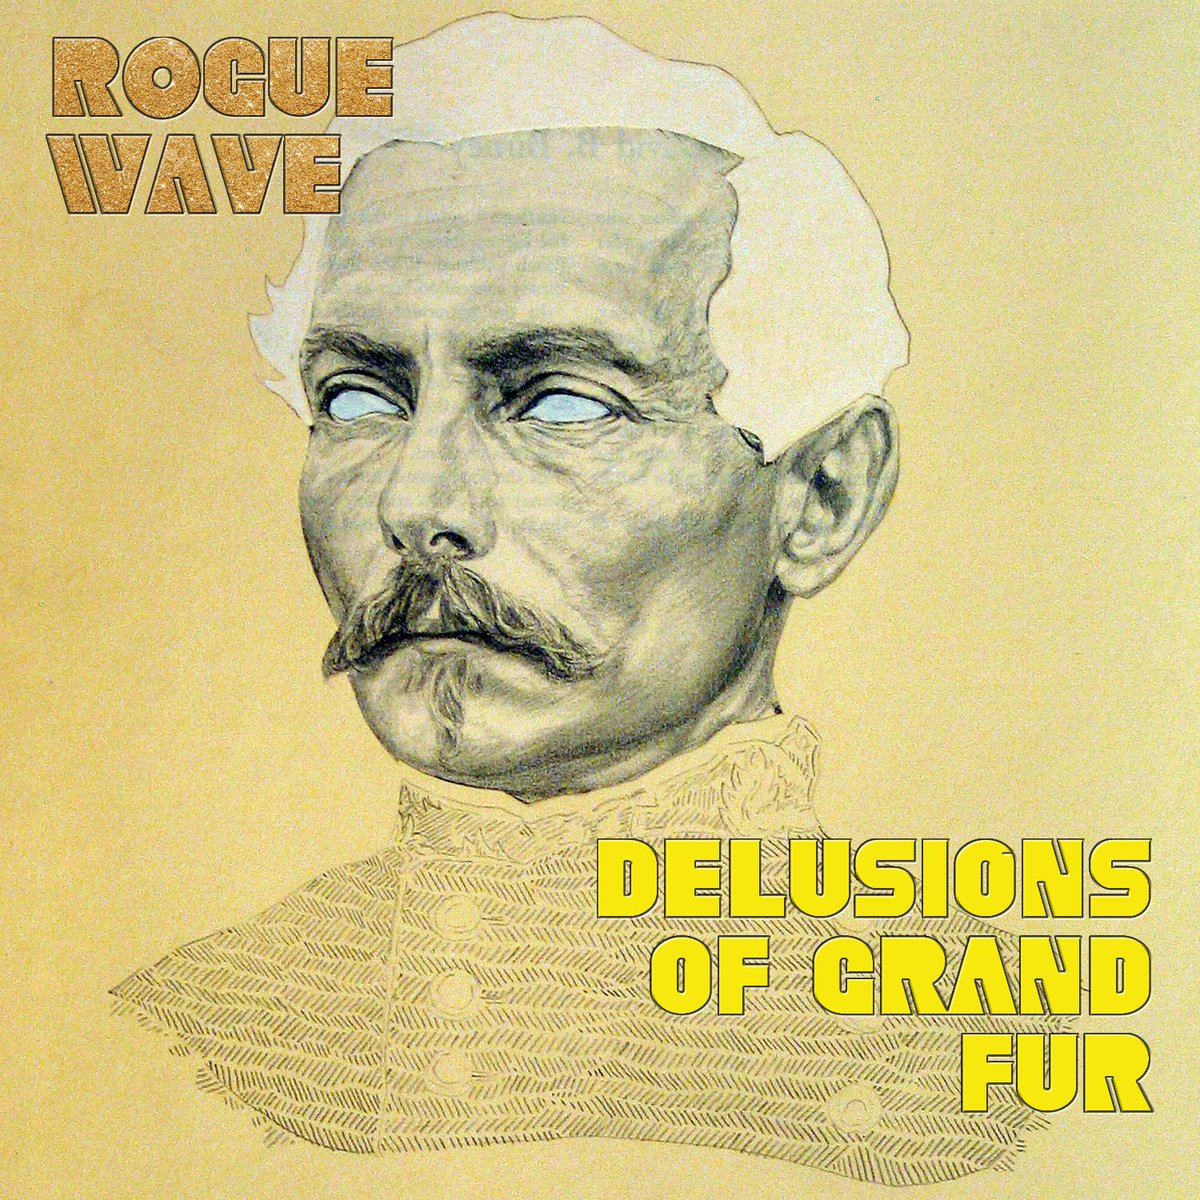 Our new album 'Delusions Of Grand Fur' is coming April 29! https://t.co/GOVTLEnSPZ